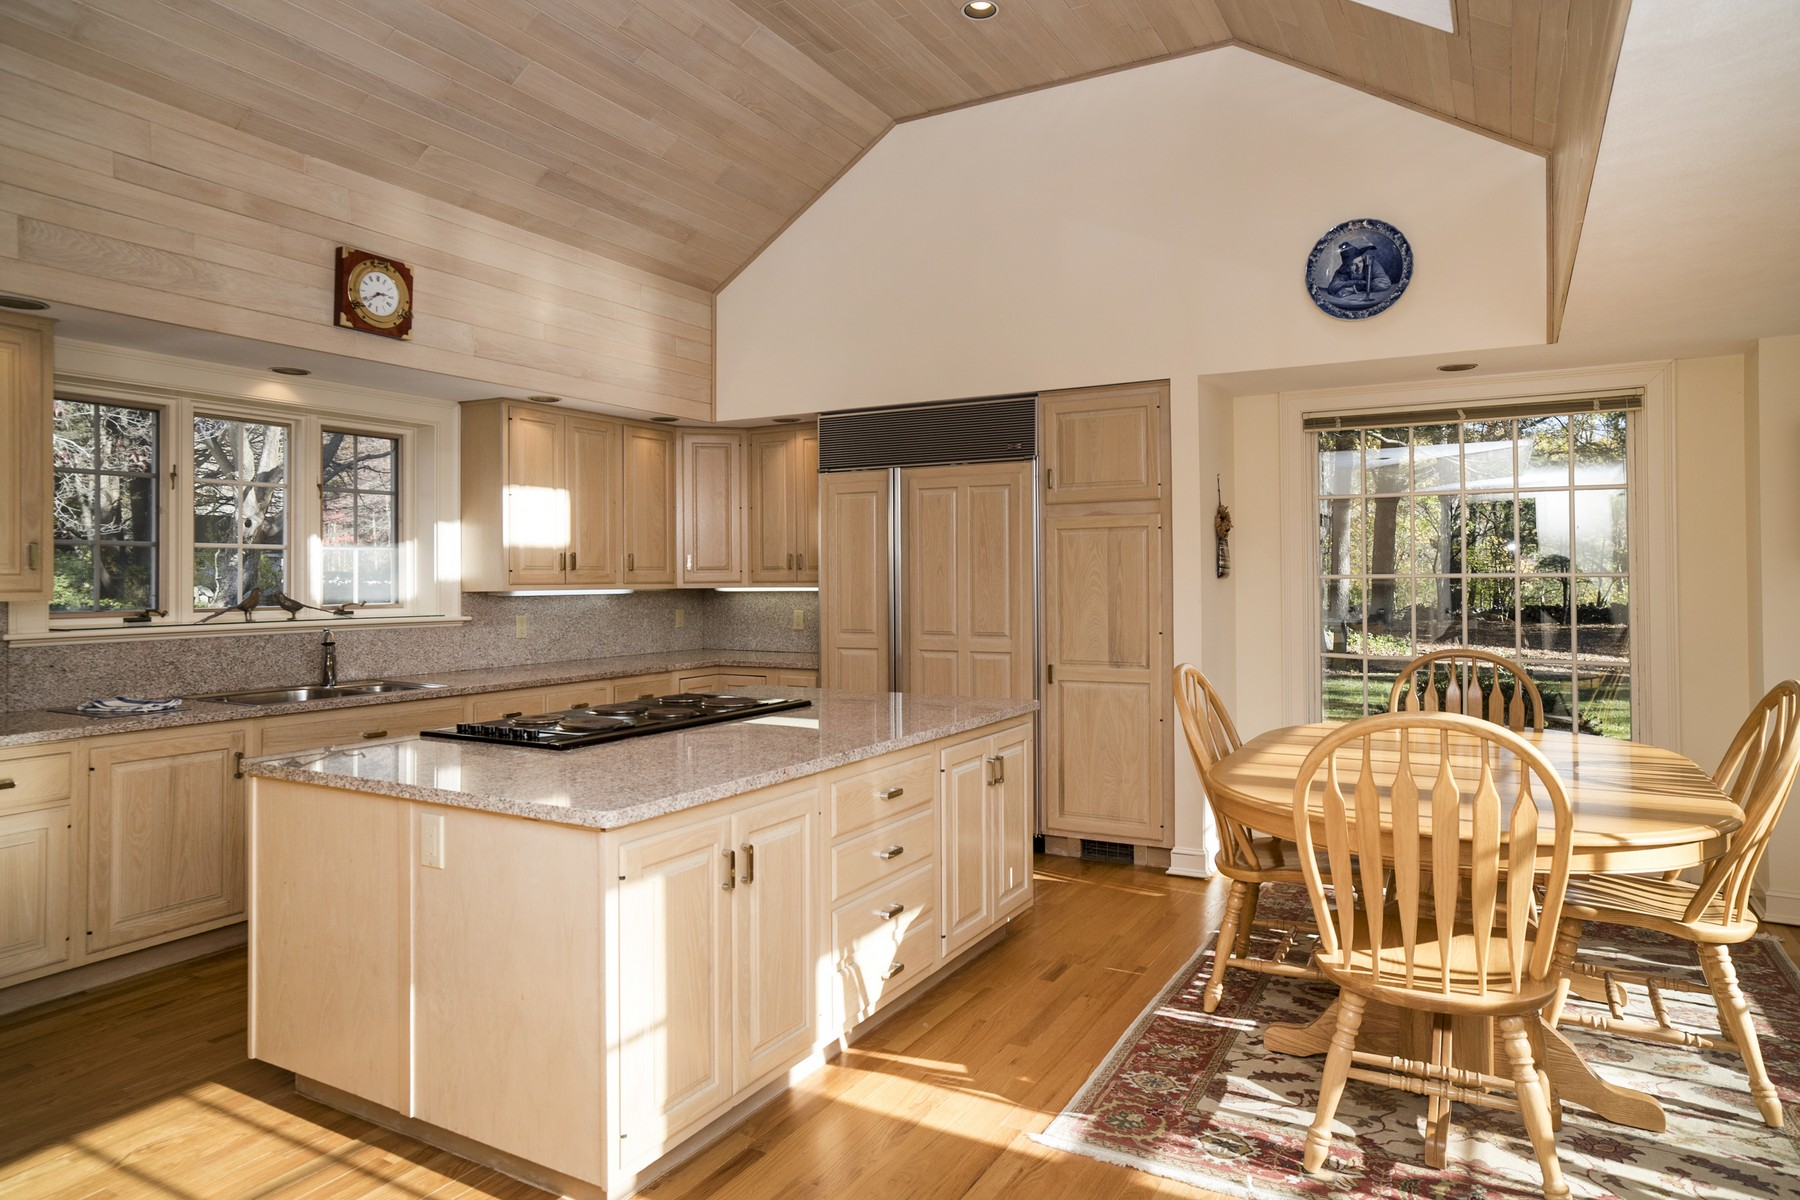 Additional photo for property listing at Country Estate 75 Reutemann Road North Stonington, Connecticut 06359 United States